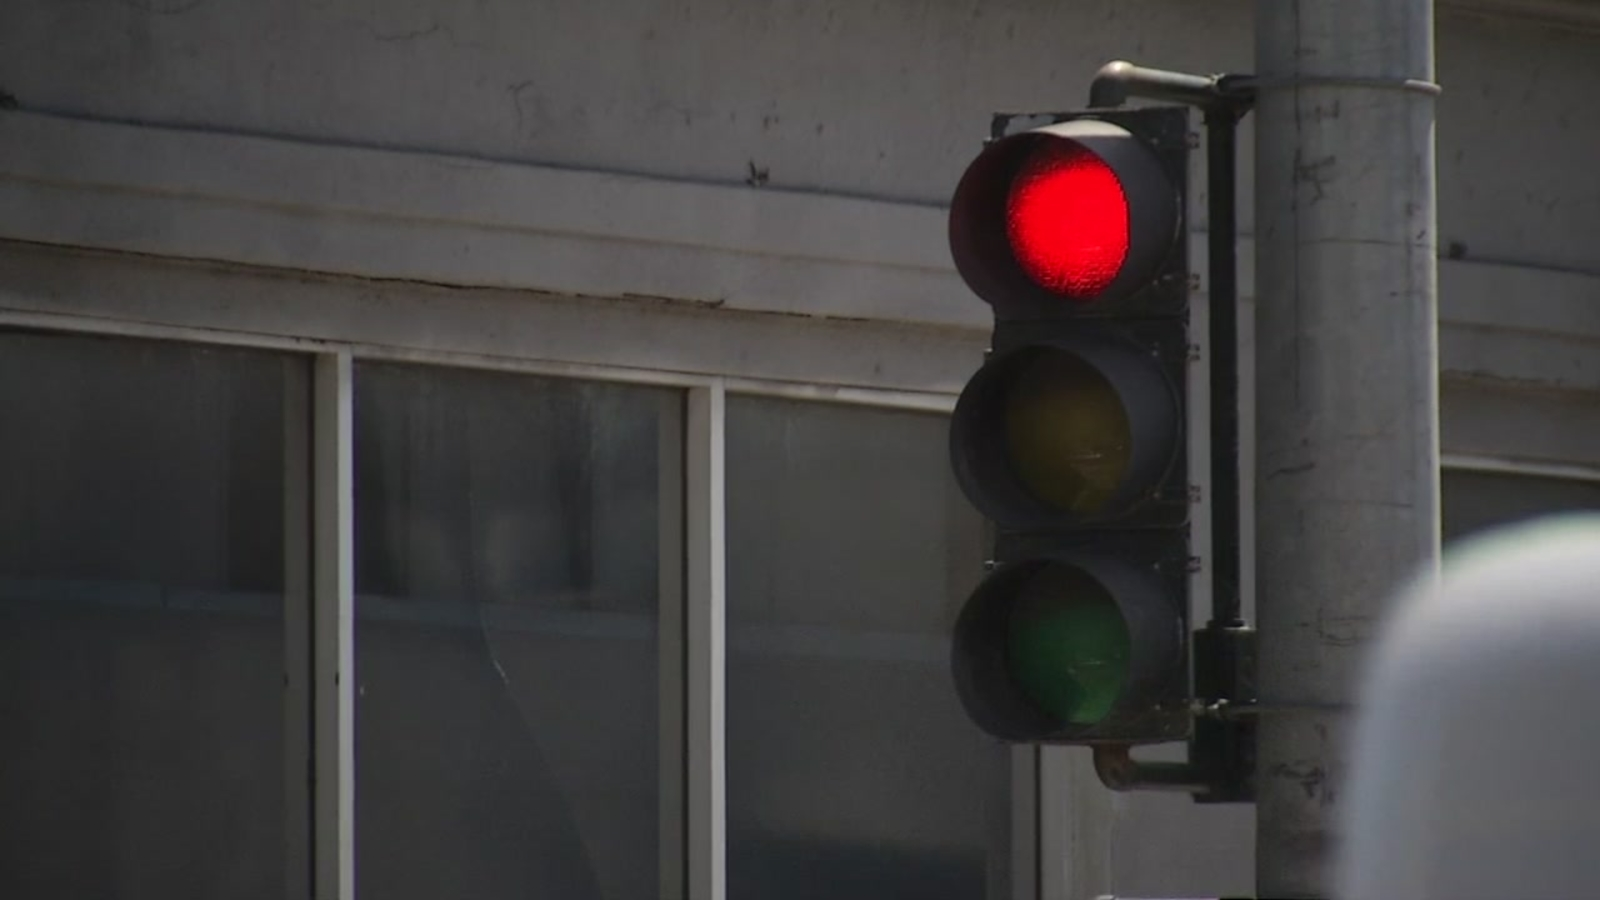 Beware red light runners: San Francisco activates new red light cameras